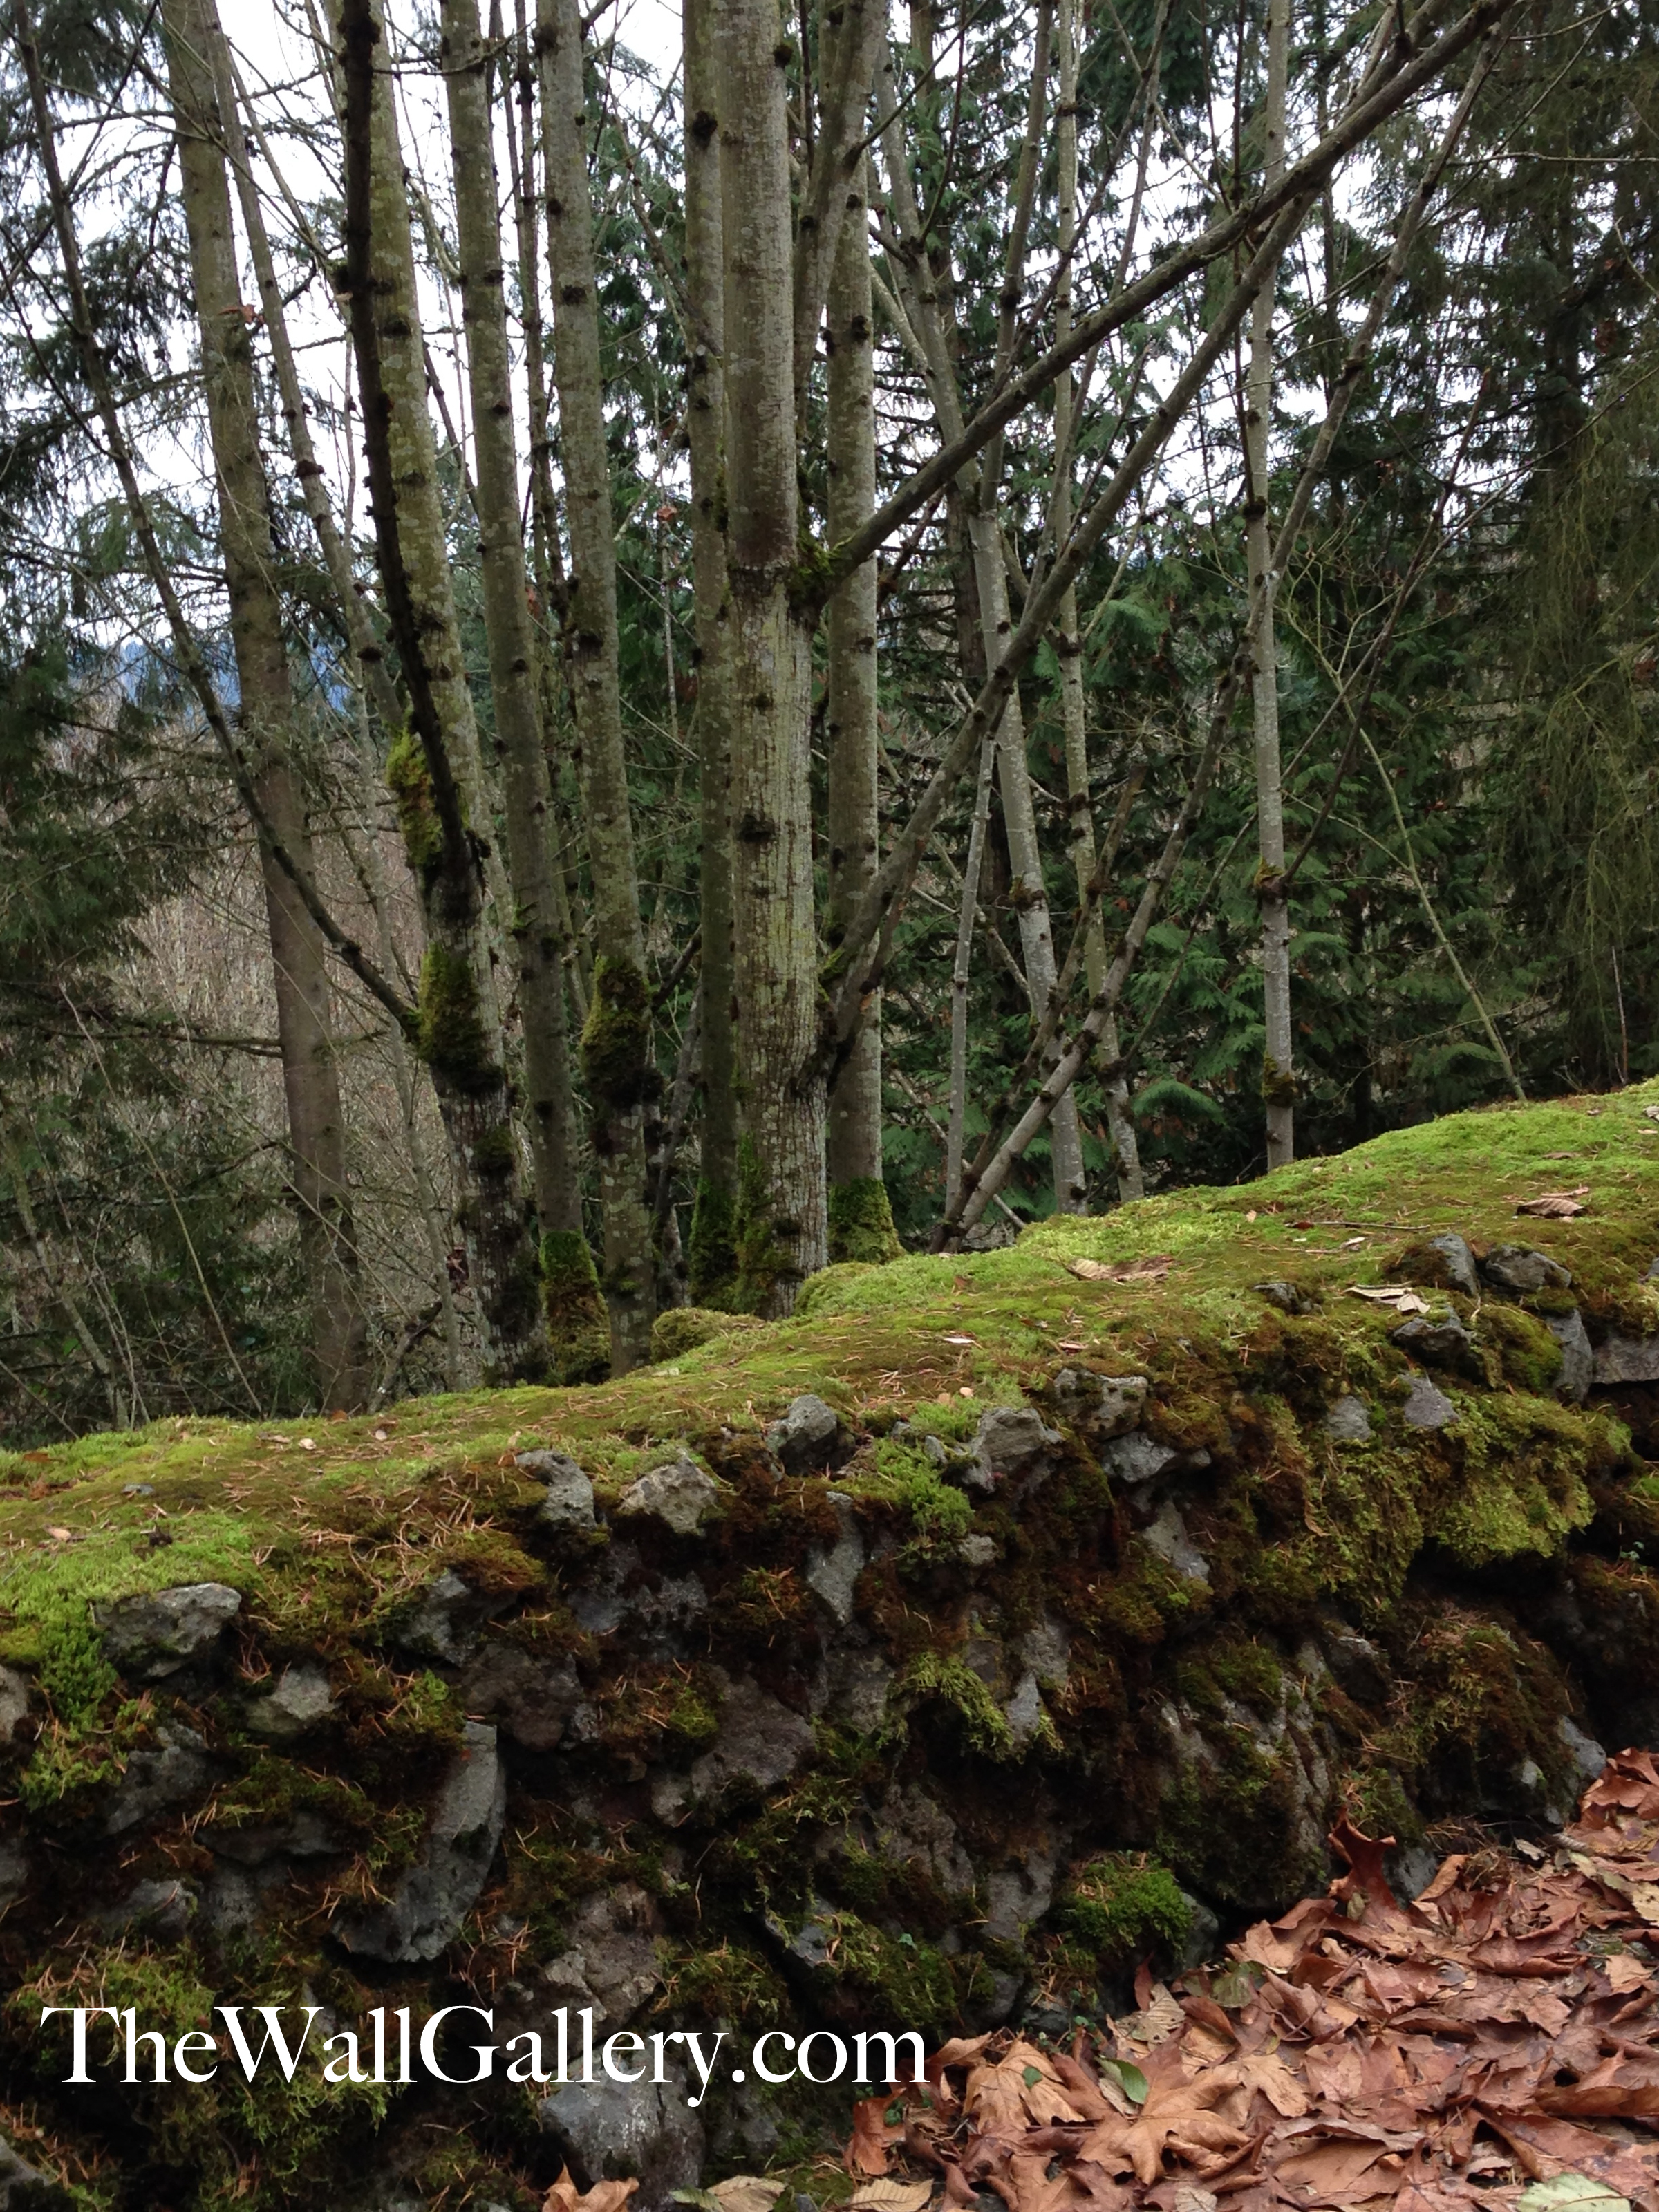 A Close Up of The Moss Rock Wall